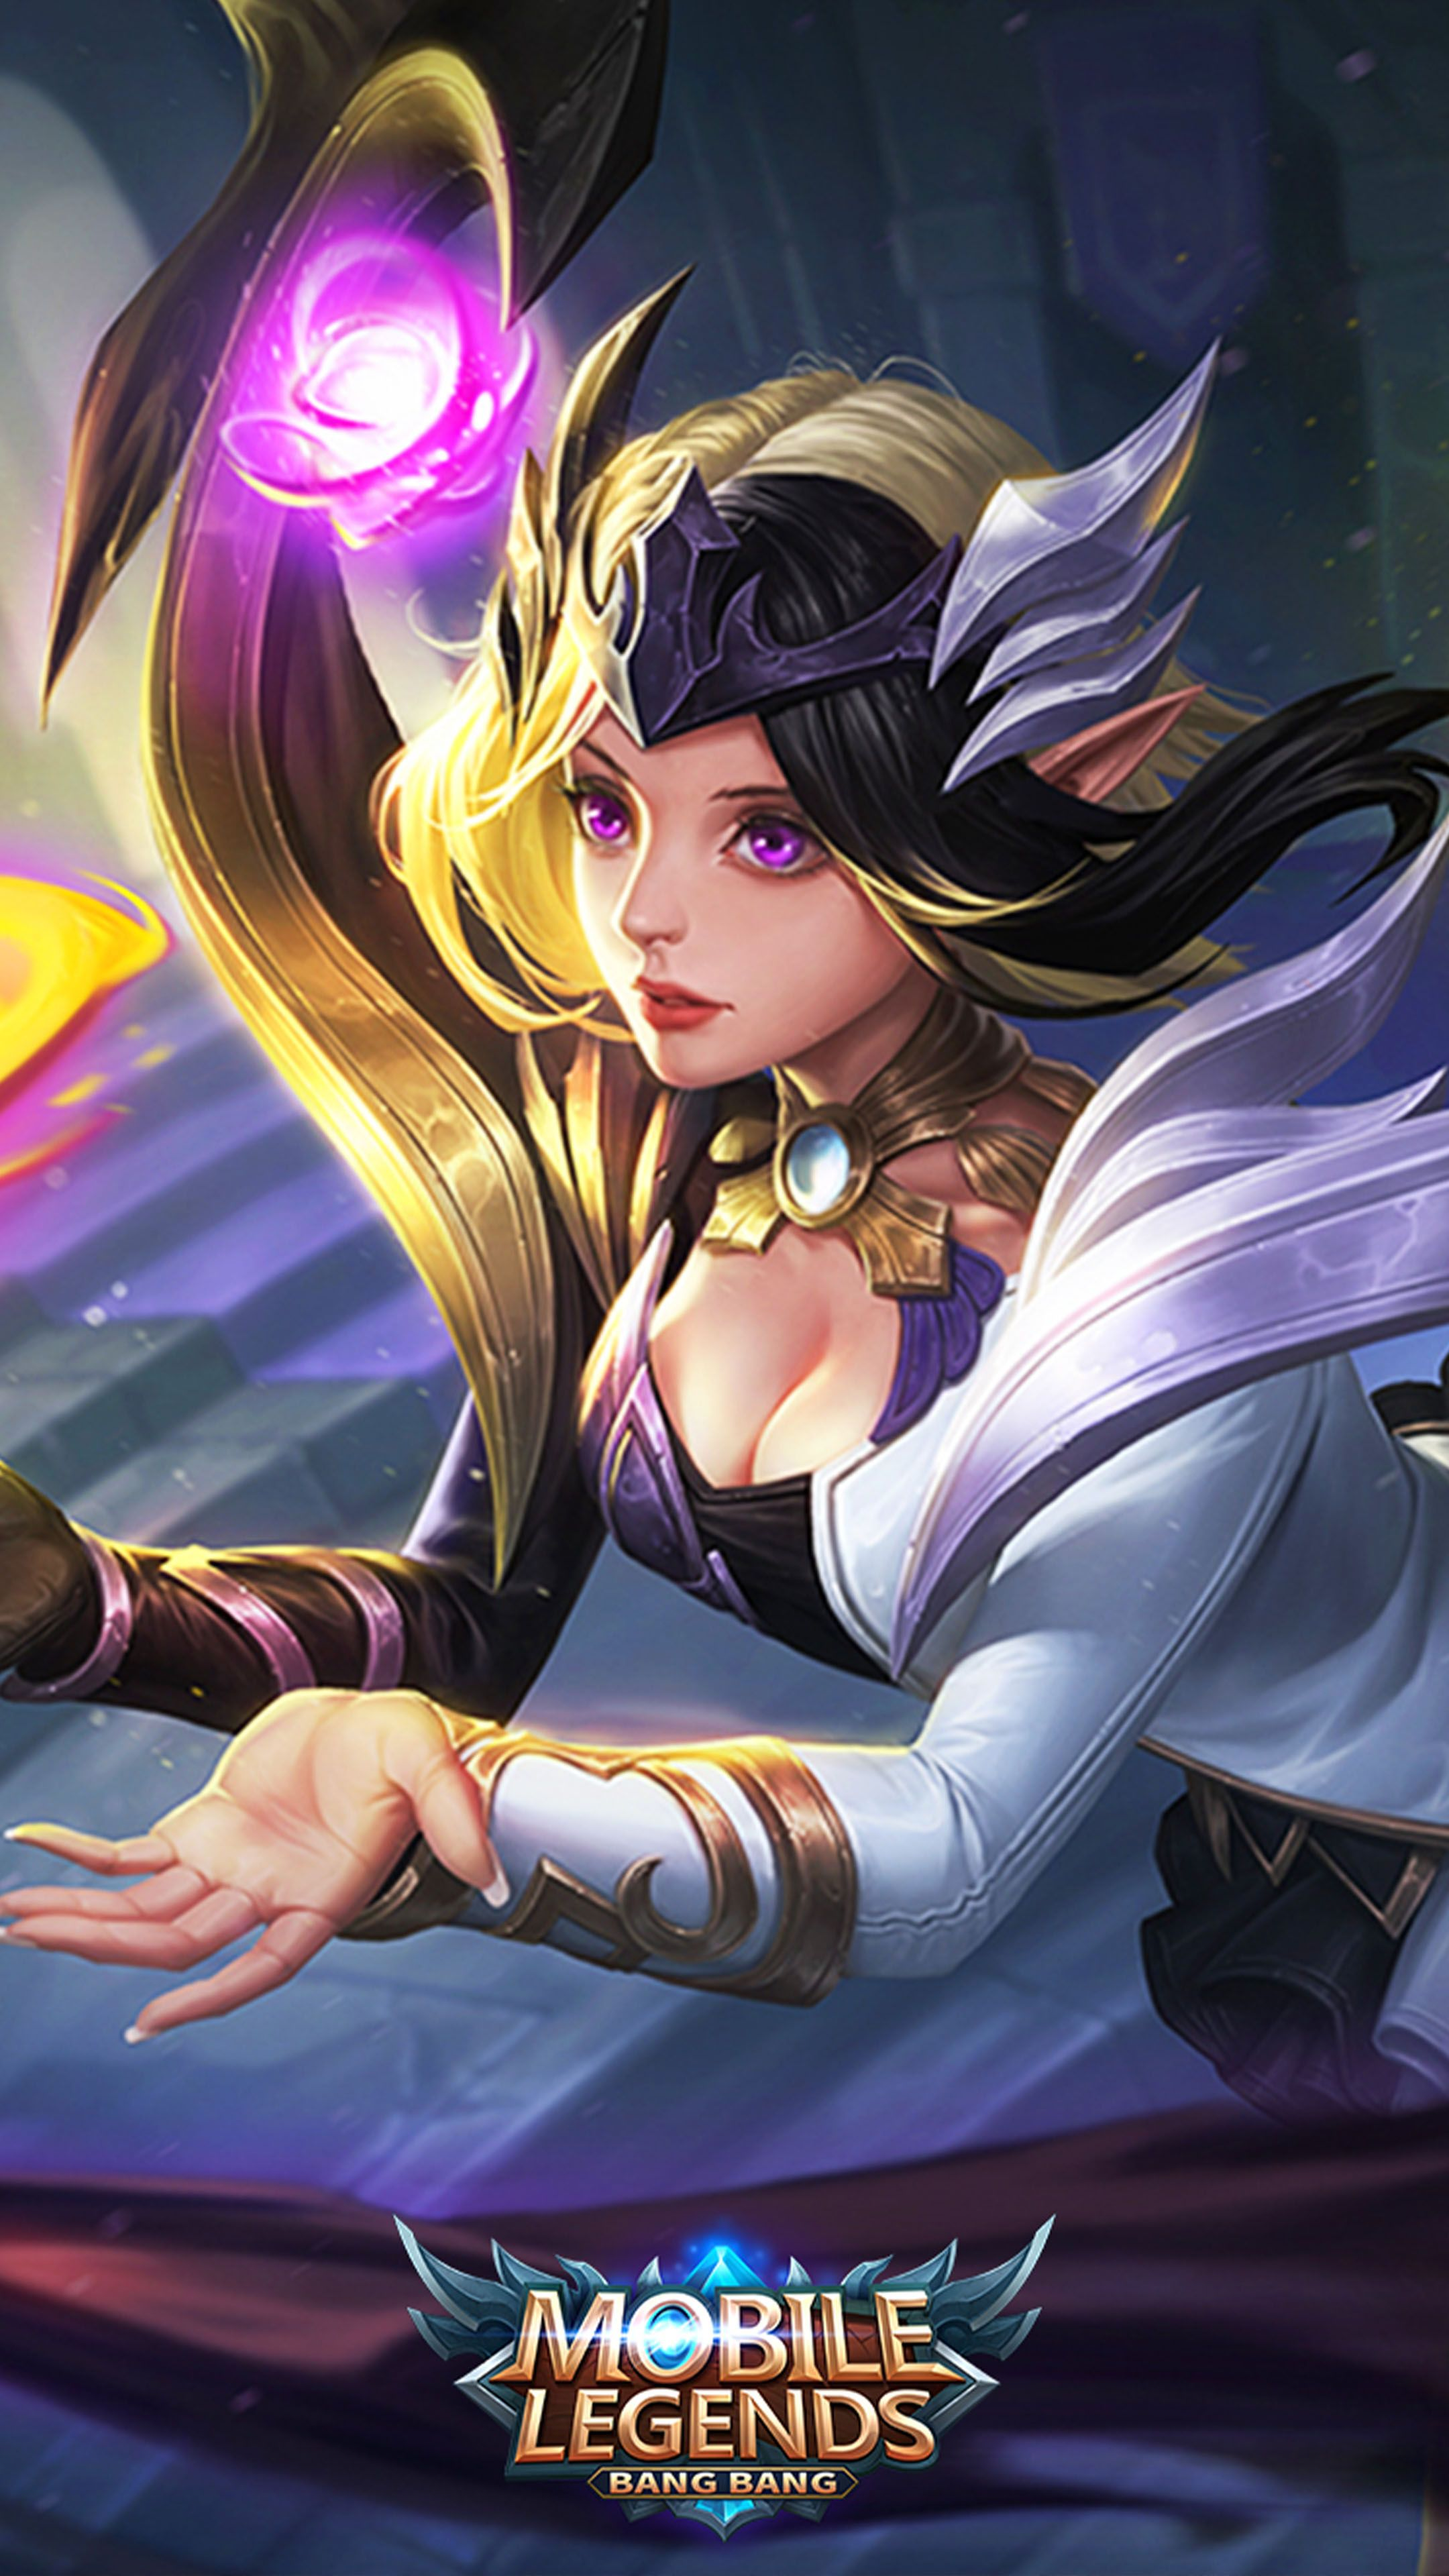 Download Lunox Mobile Legends Free Pure 4K Ultra HD Mobile